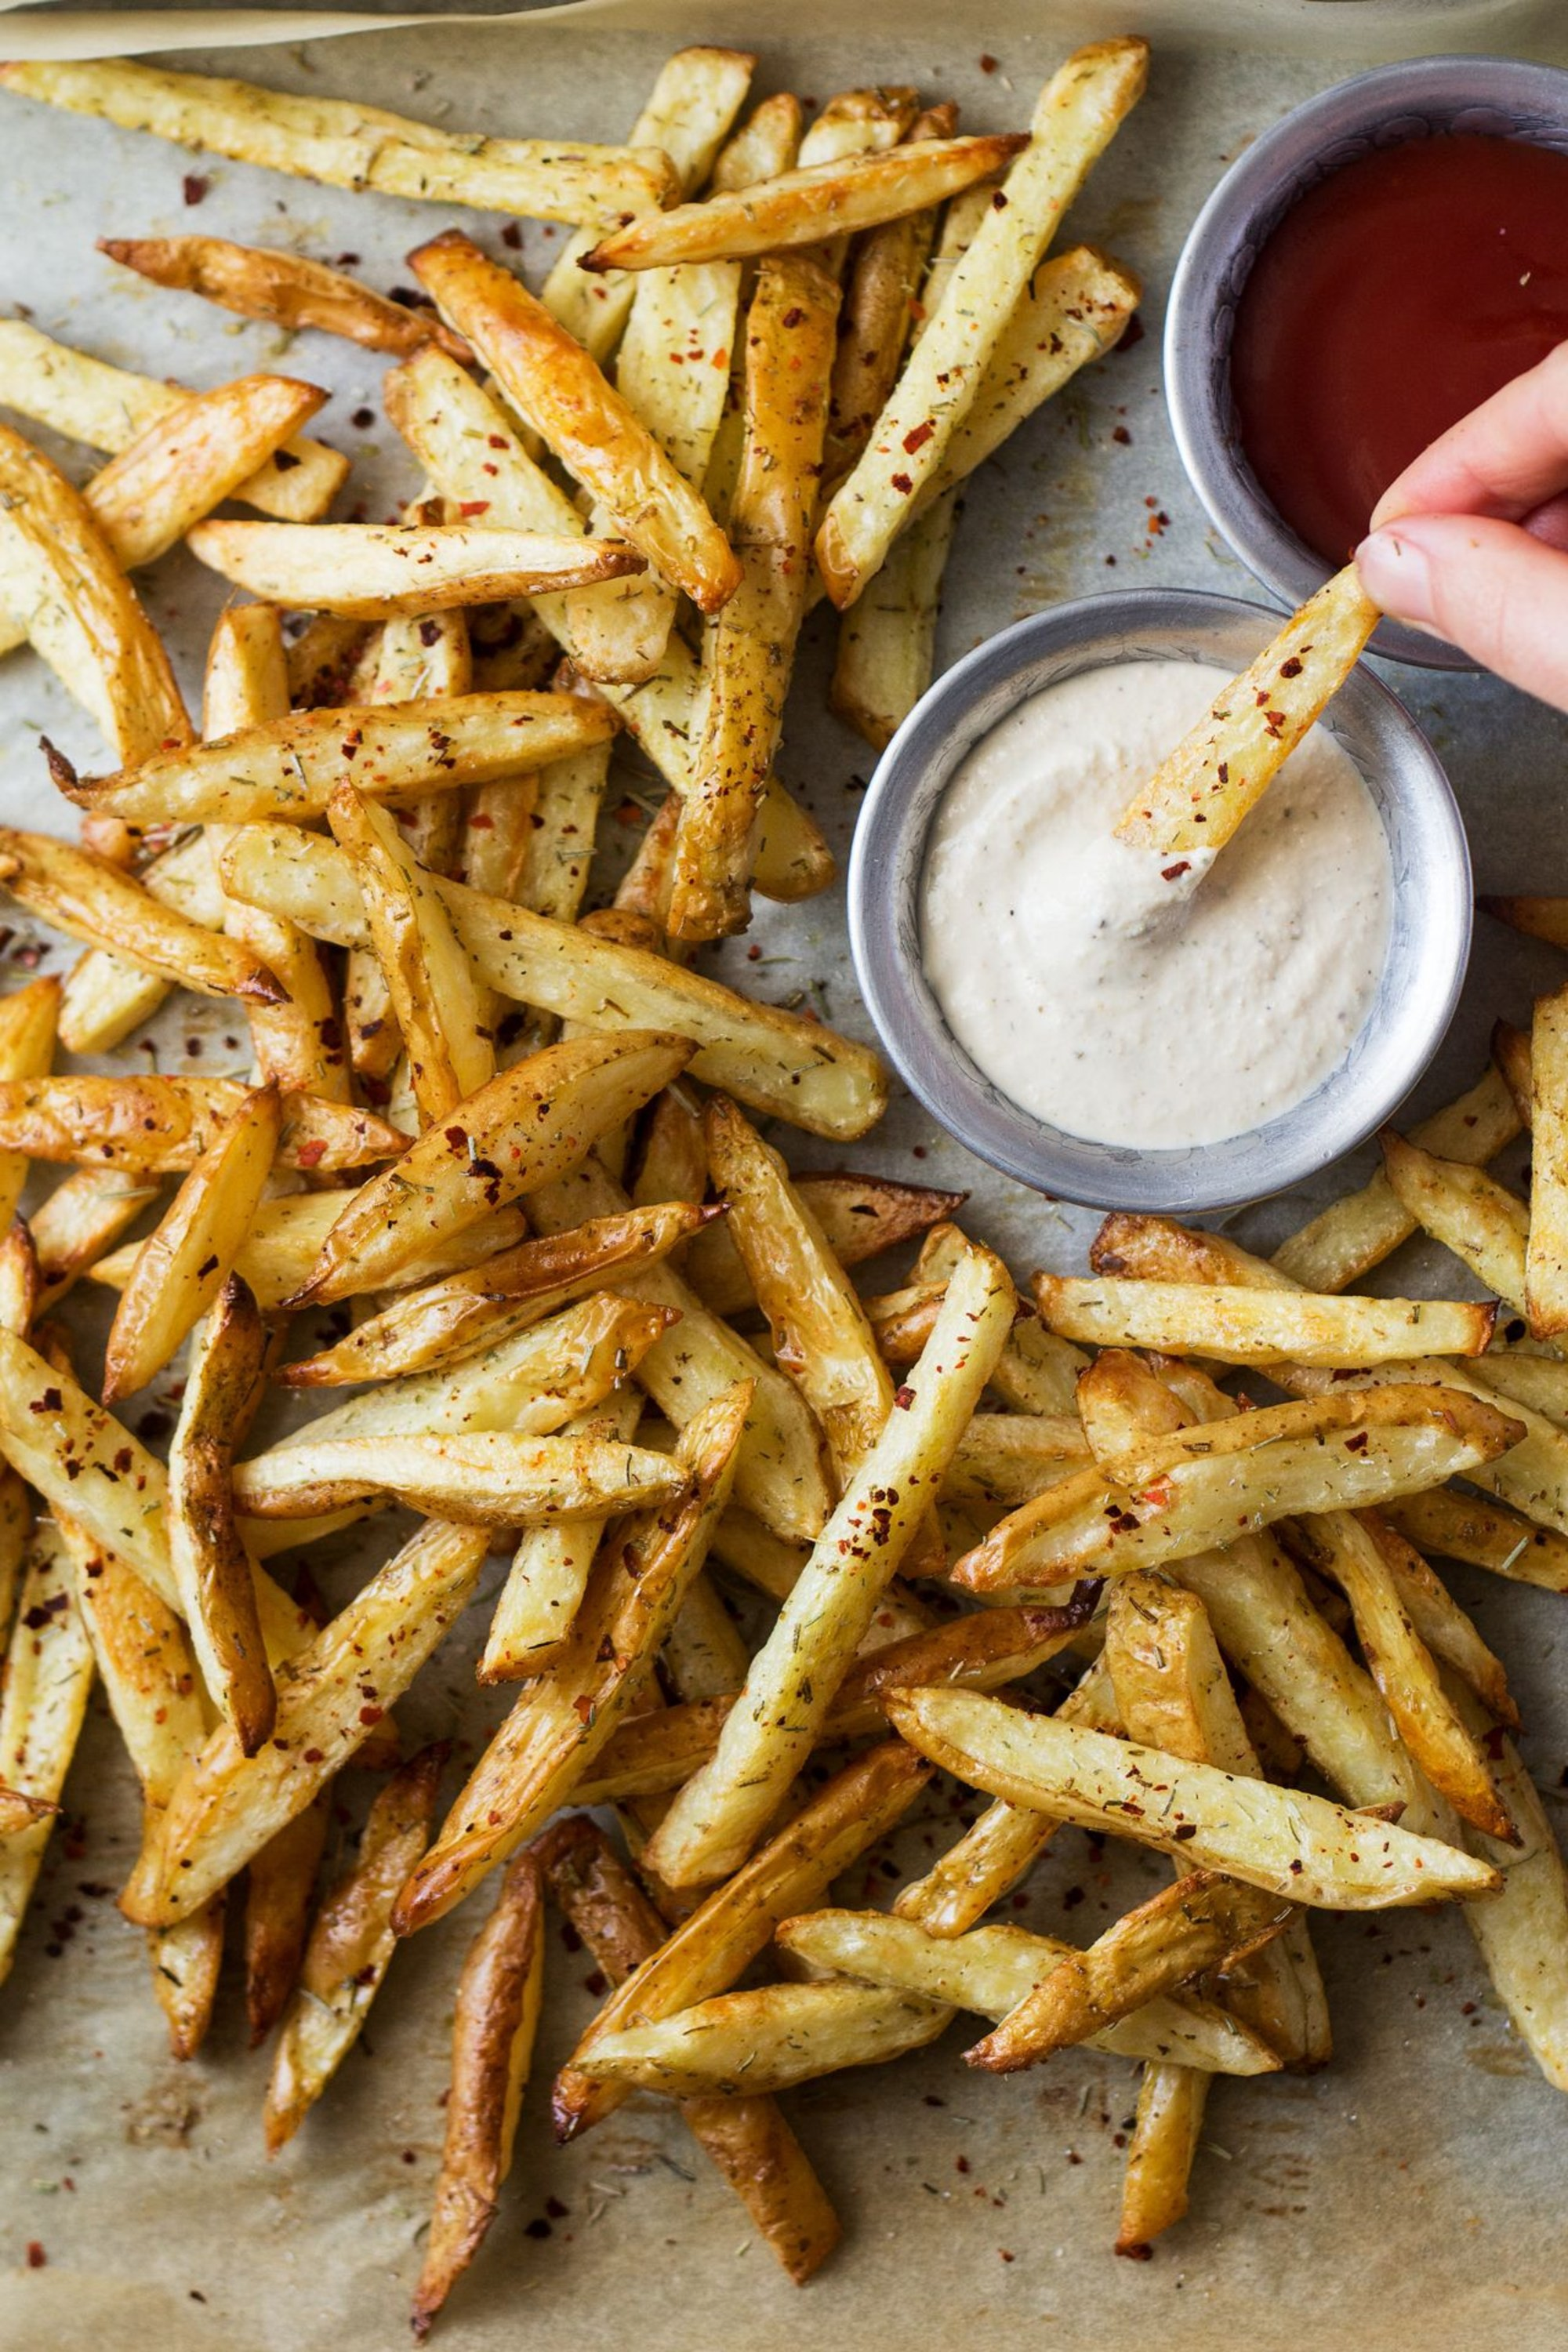 yume-these-rosemary-fries-come-with-an-addictive-roasted-garlic-Ddd89f92126b78bae74516b19ecf62583